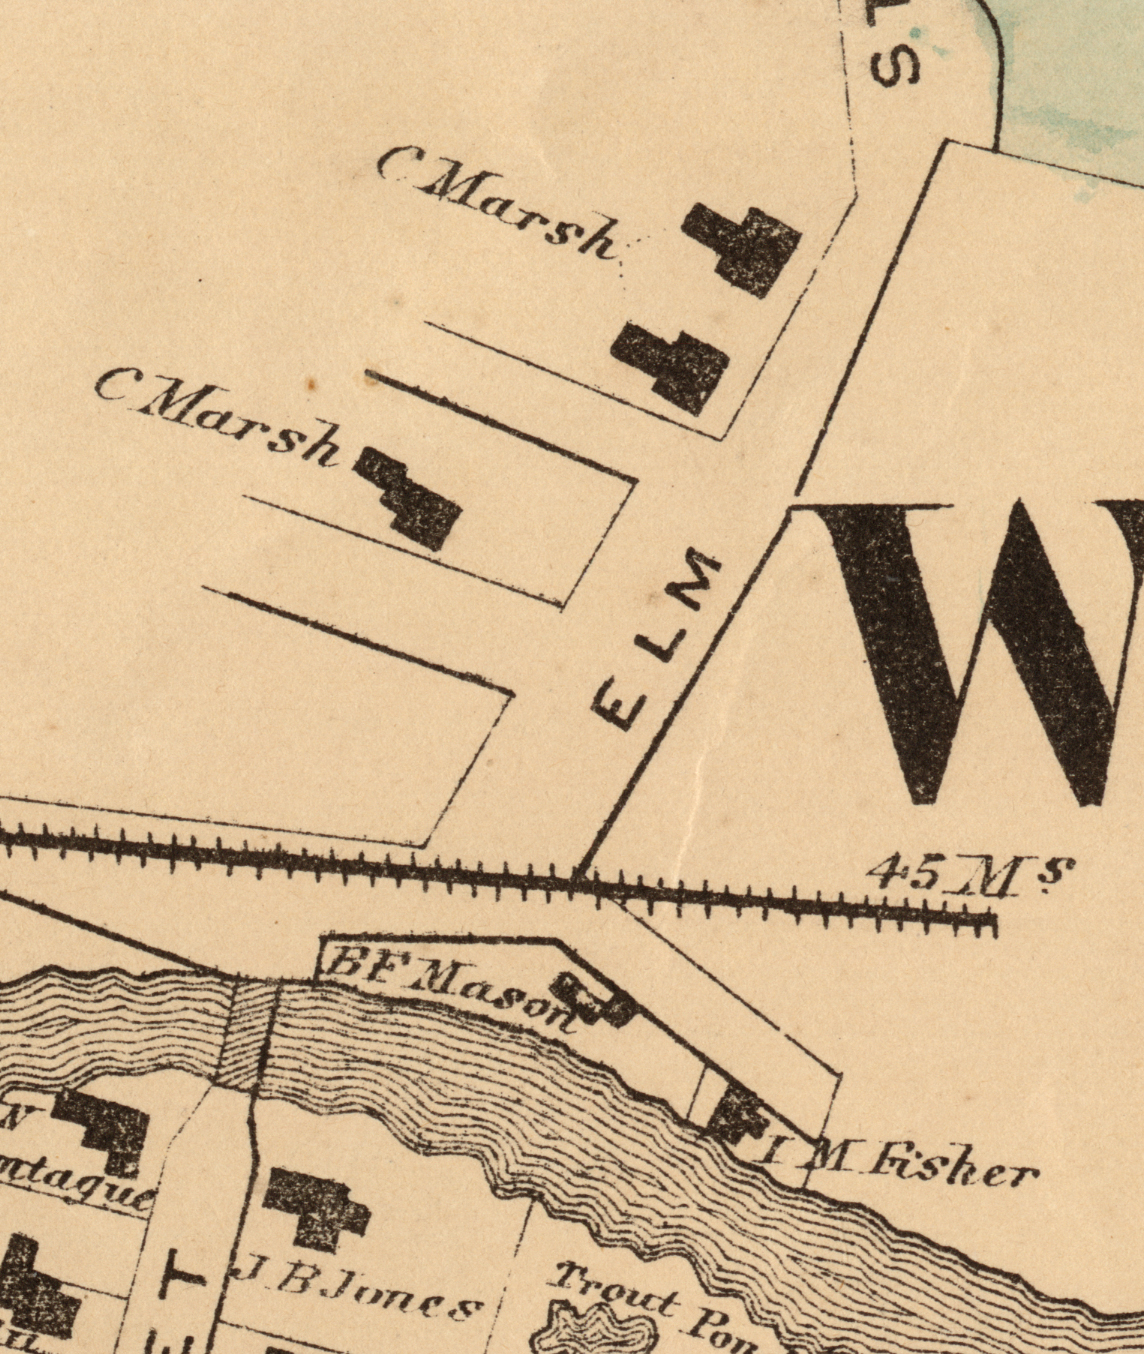 Detail of the upper part of Elm Street including Charles Marsh's houses. The railroad track on the map was never completed. Windsor County Map. 1869. F.W. Beers & Co.